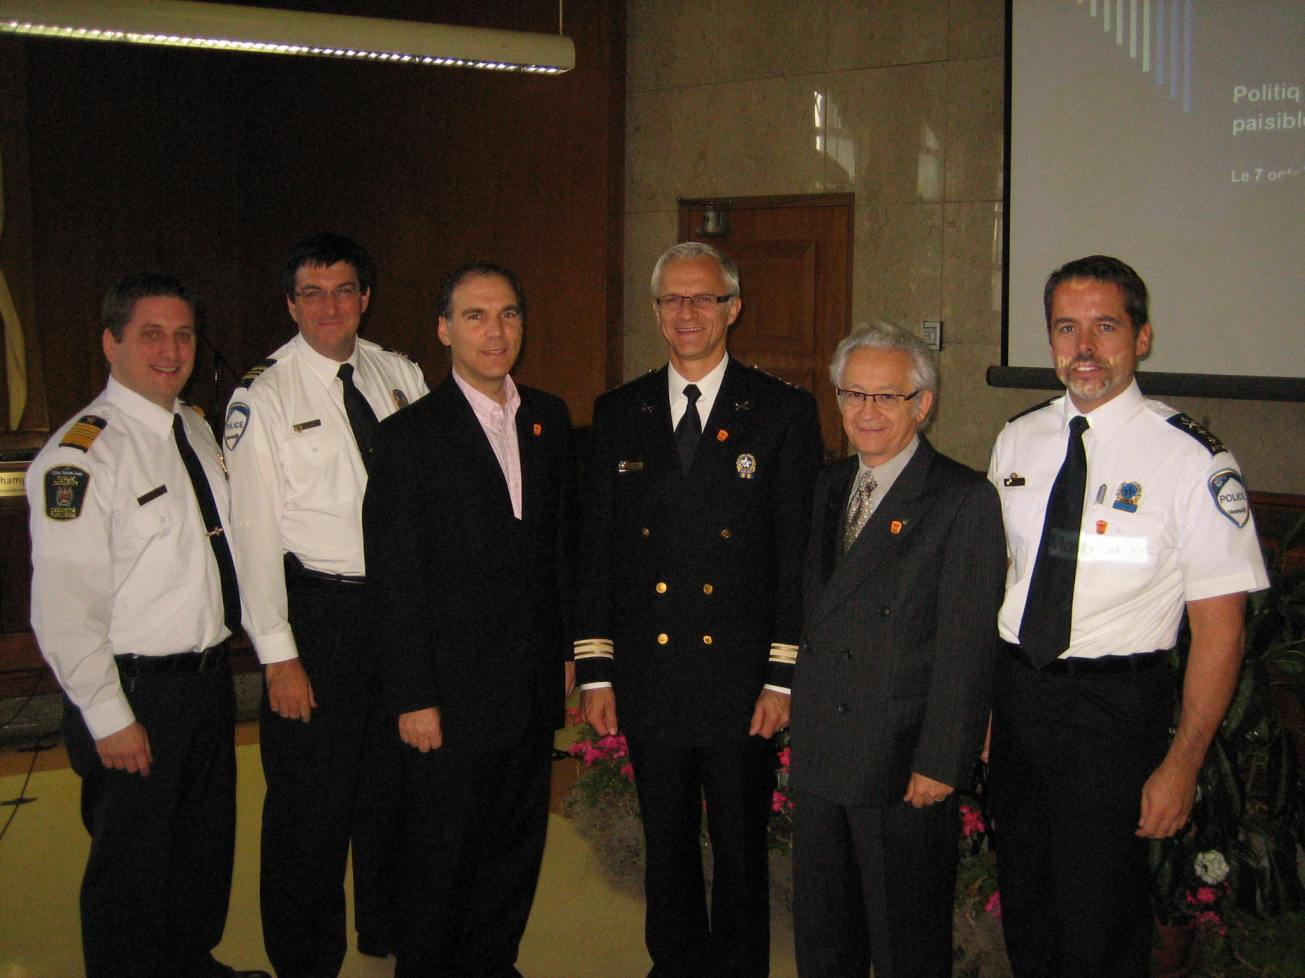 2010-10-07-spvm-chief-004